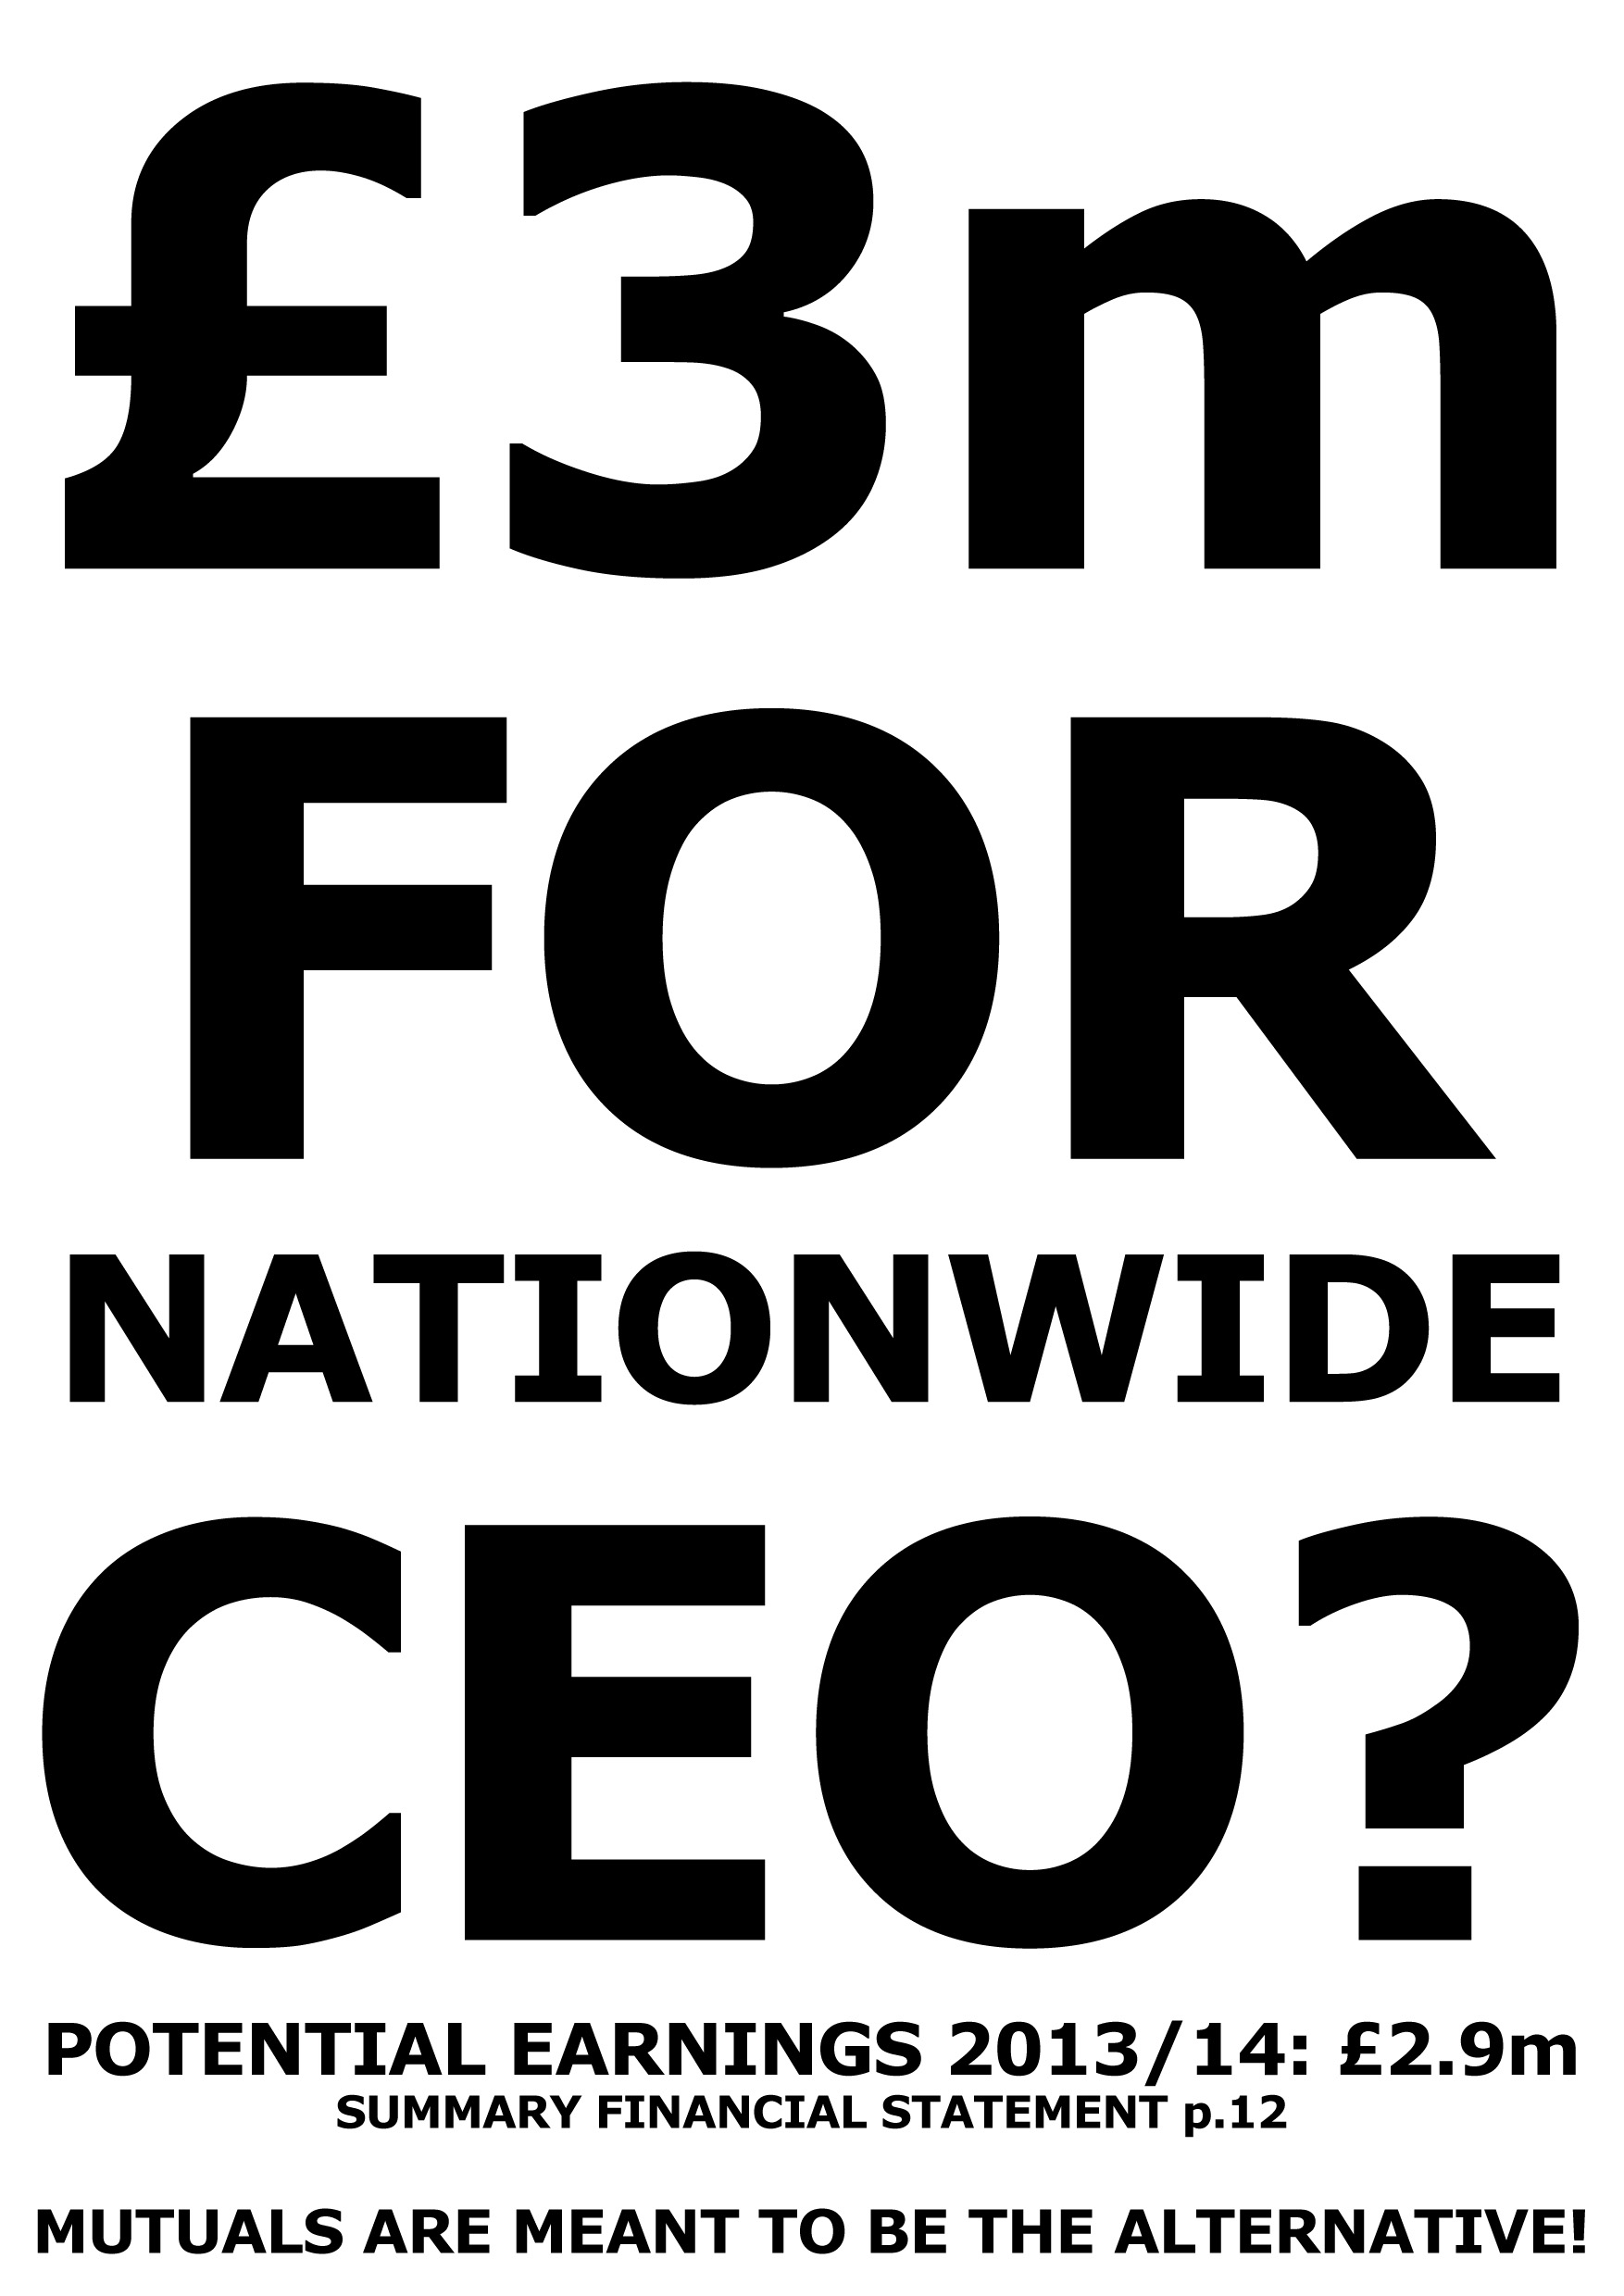 3m_for_Nationwide_CEO